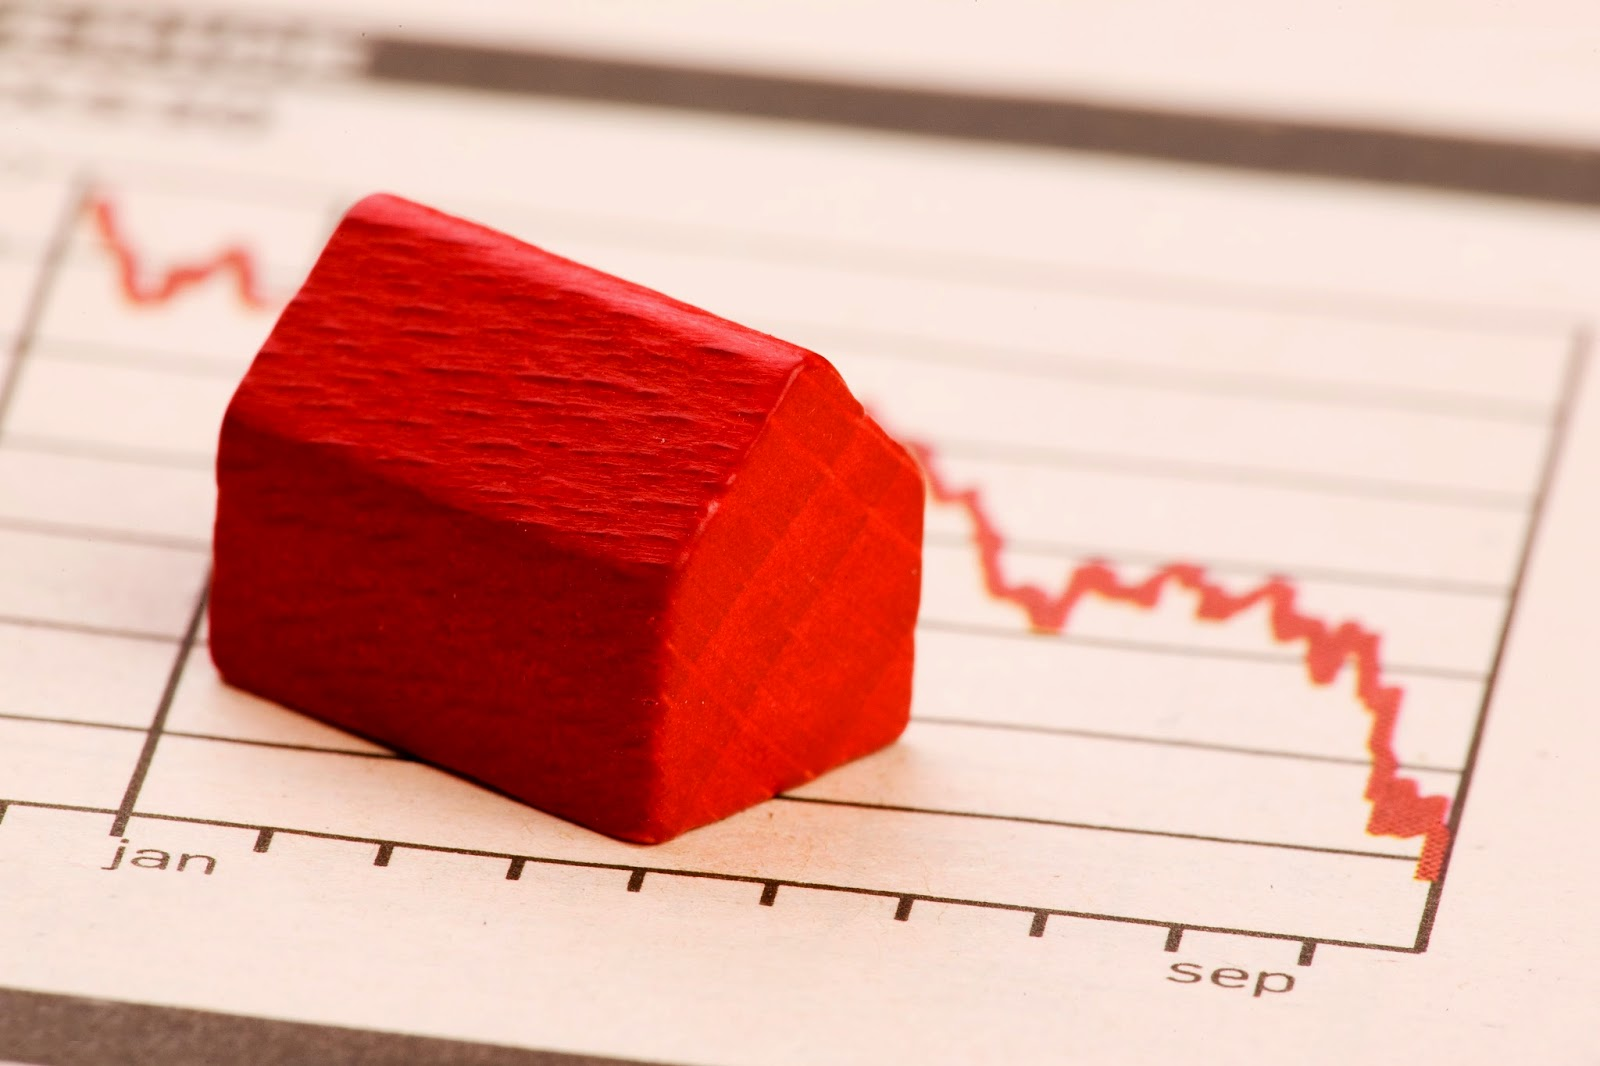 Realtors believe bank rate cut won't impact market